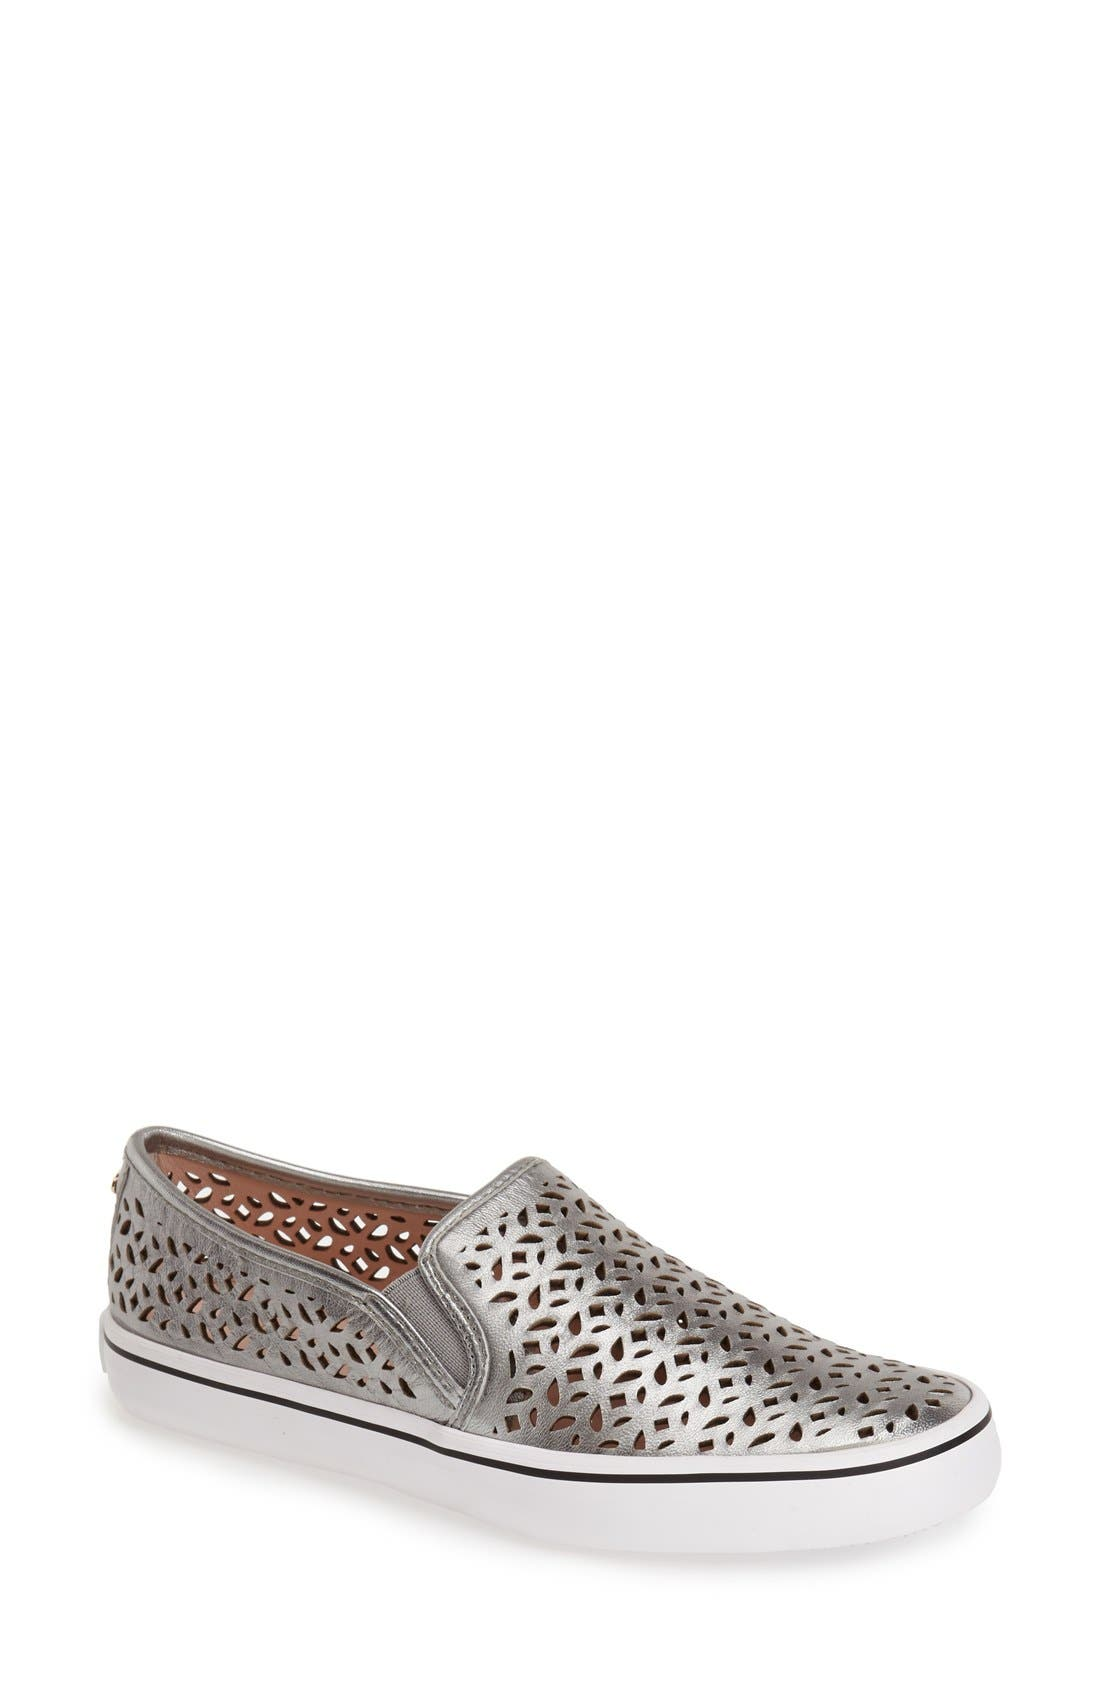 Alternate Image 1 Selected - kate spade new york 'saddie' slip-on sneaker (Women)